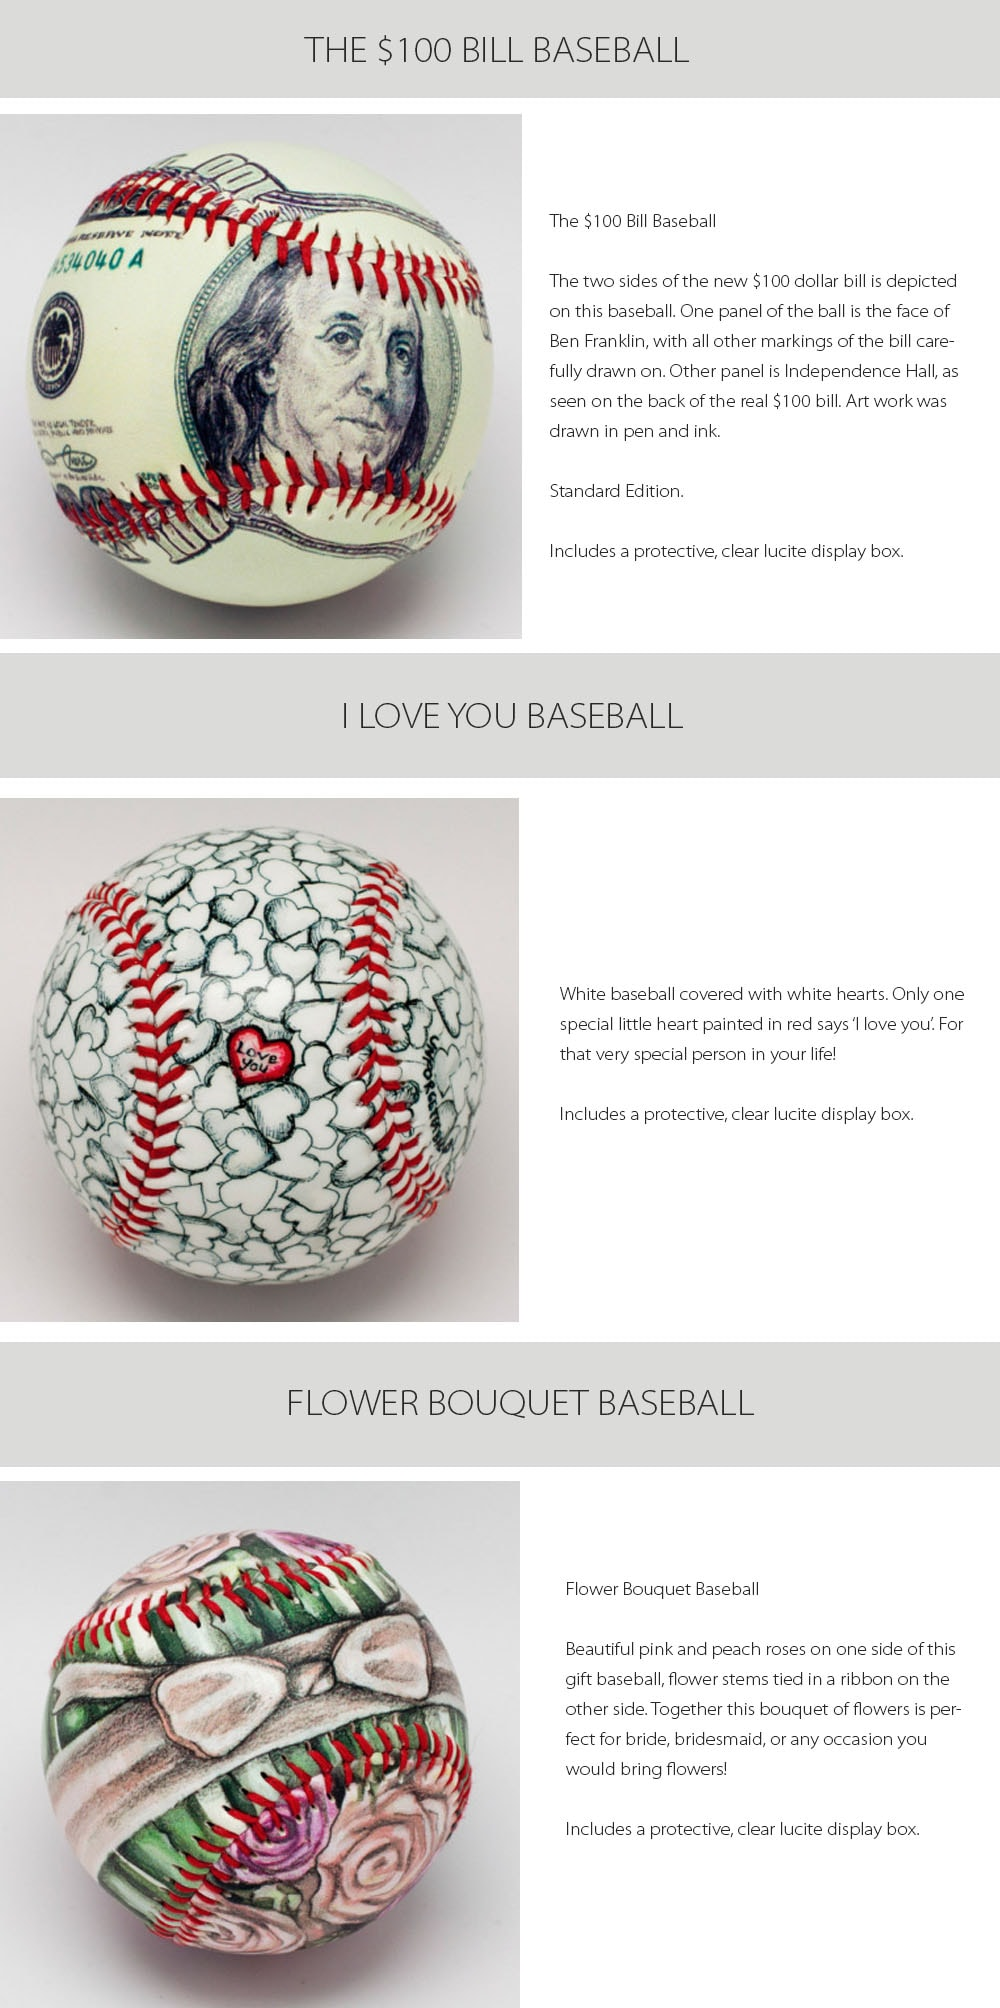 Unforgetaballs Baseball Collection Every Baseball Has Its Own Meaning